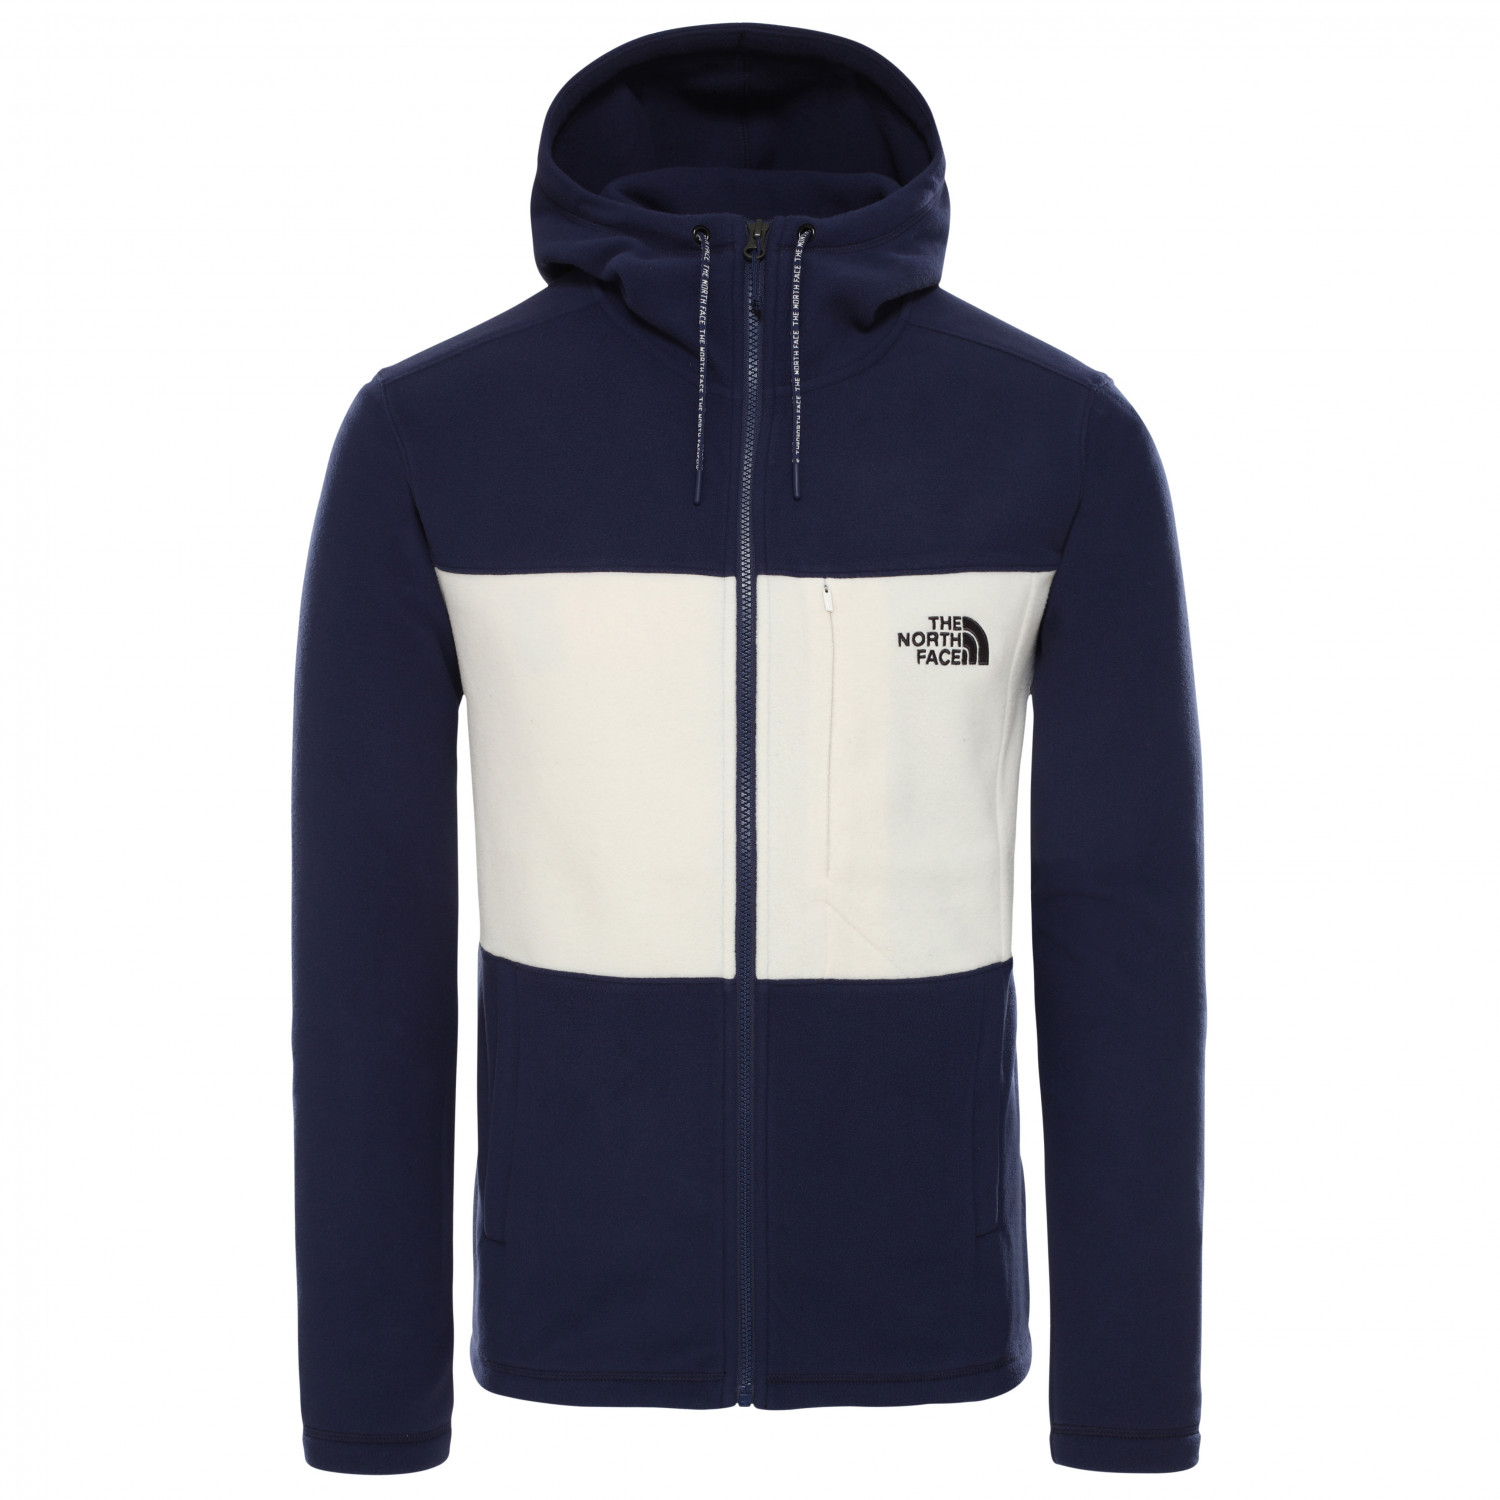 The North Face Fleecejacke günstig | North Face Fleece